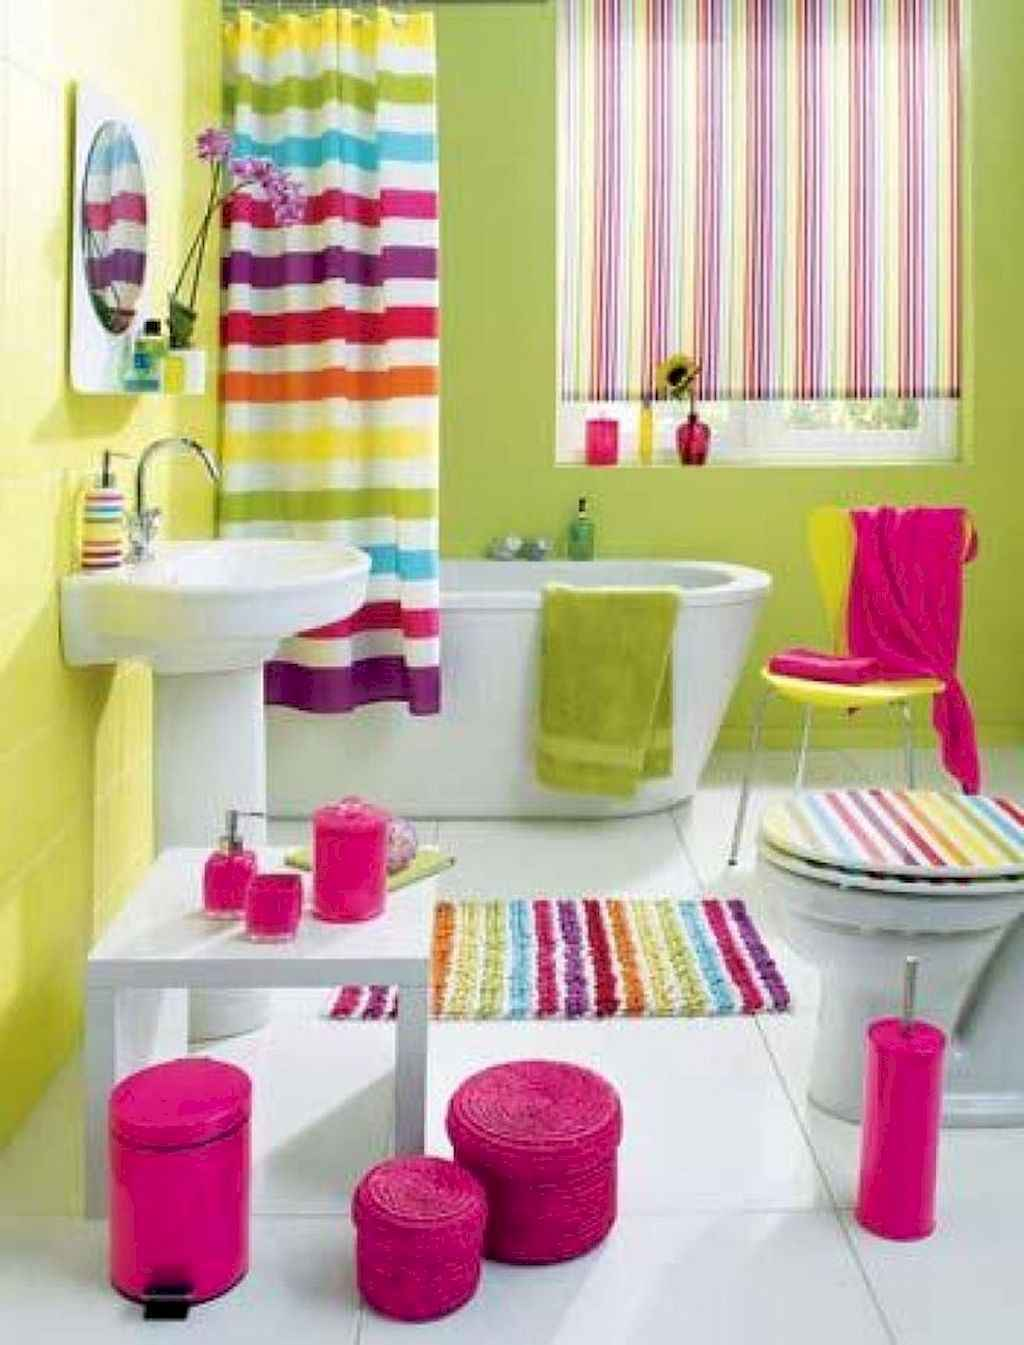 55 cool and relax bathroom design ideas (34)